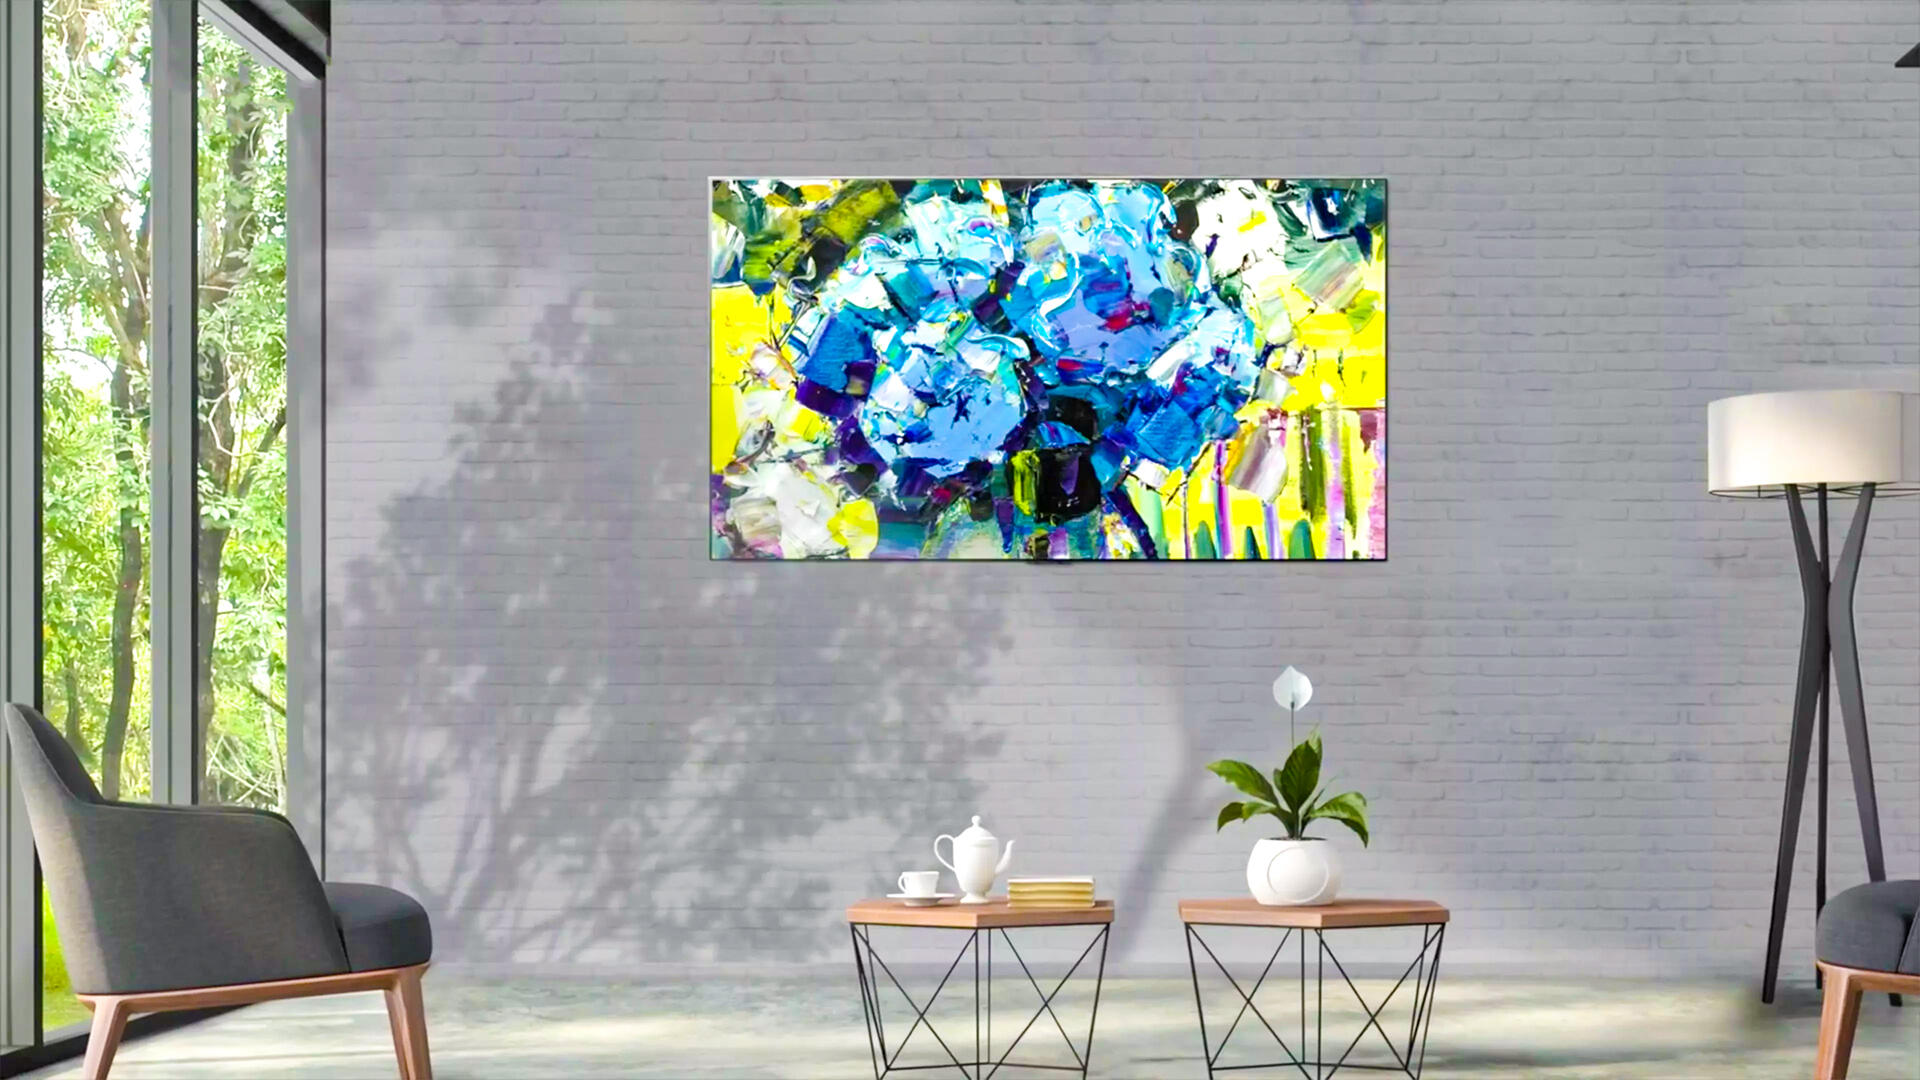 Free 4K from an antenna? These 2021 TVs from Samsung, Sony and LG can get it